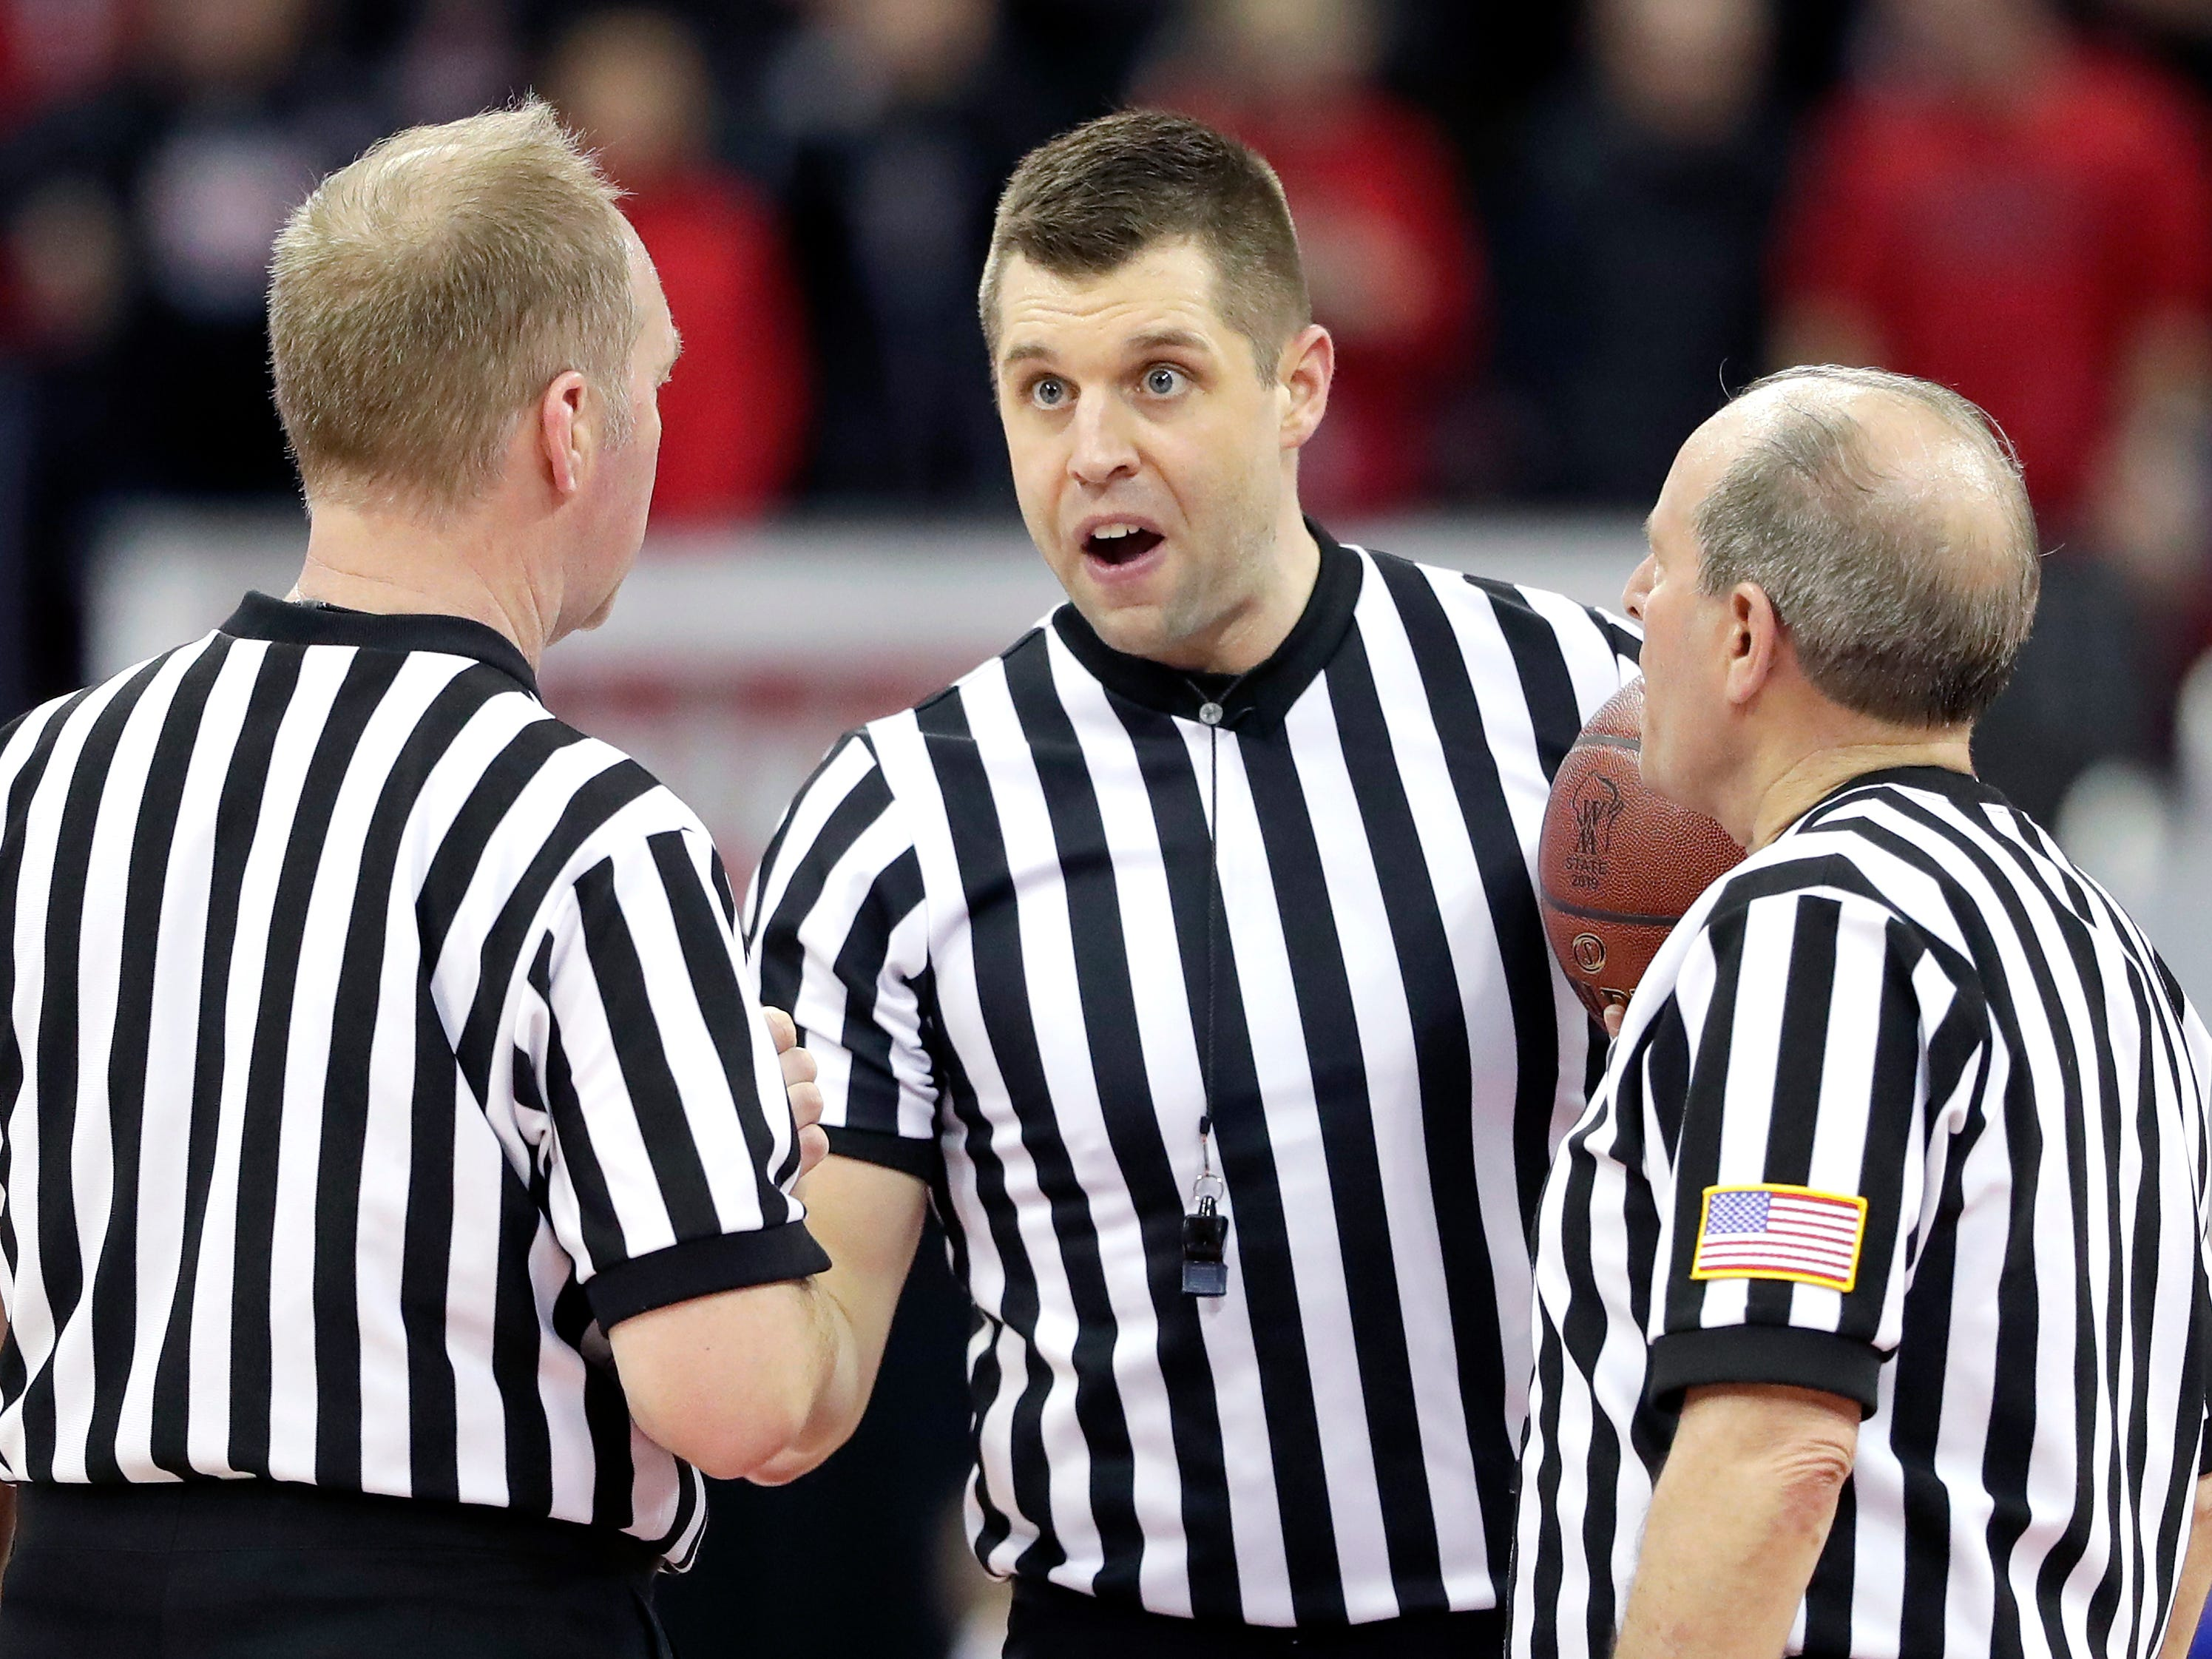 Referees discuss during their WIAA Division 4 boys basketball state semifinal on Thursday, March 14, 2019, at the Kohl Center in Madison, Wis. Lourdes defeated Osseo-Fairchild 70-68.